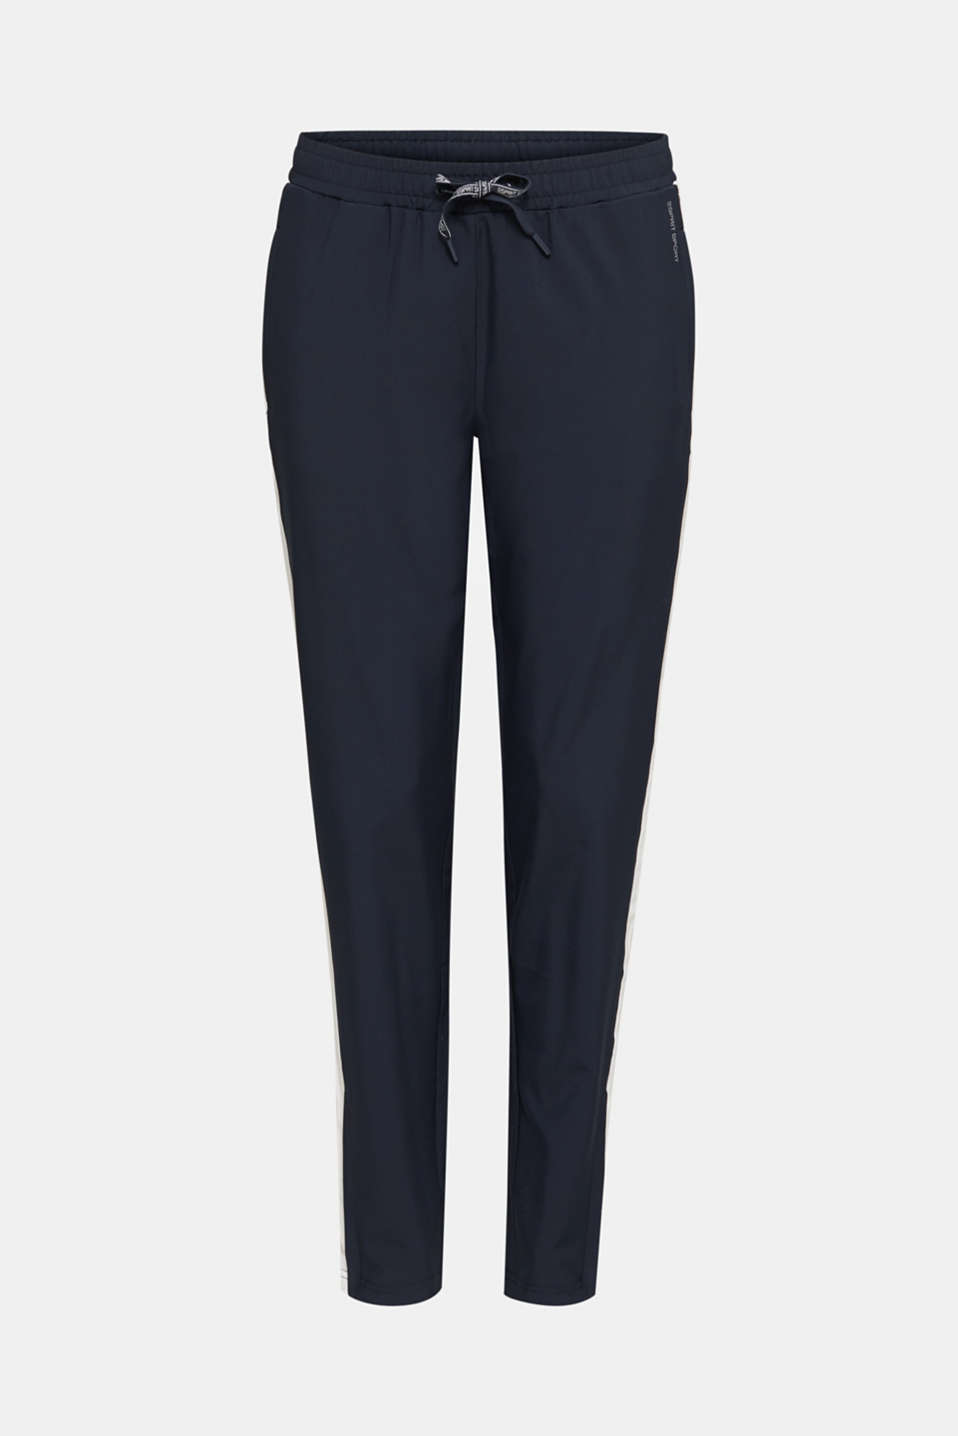 Active trousers with stripes, E-DRY, NAVY 2, detail image number 6